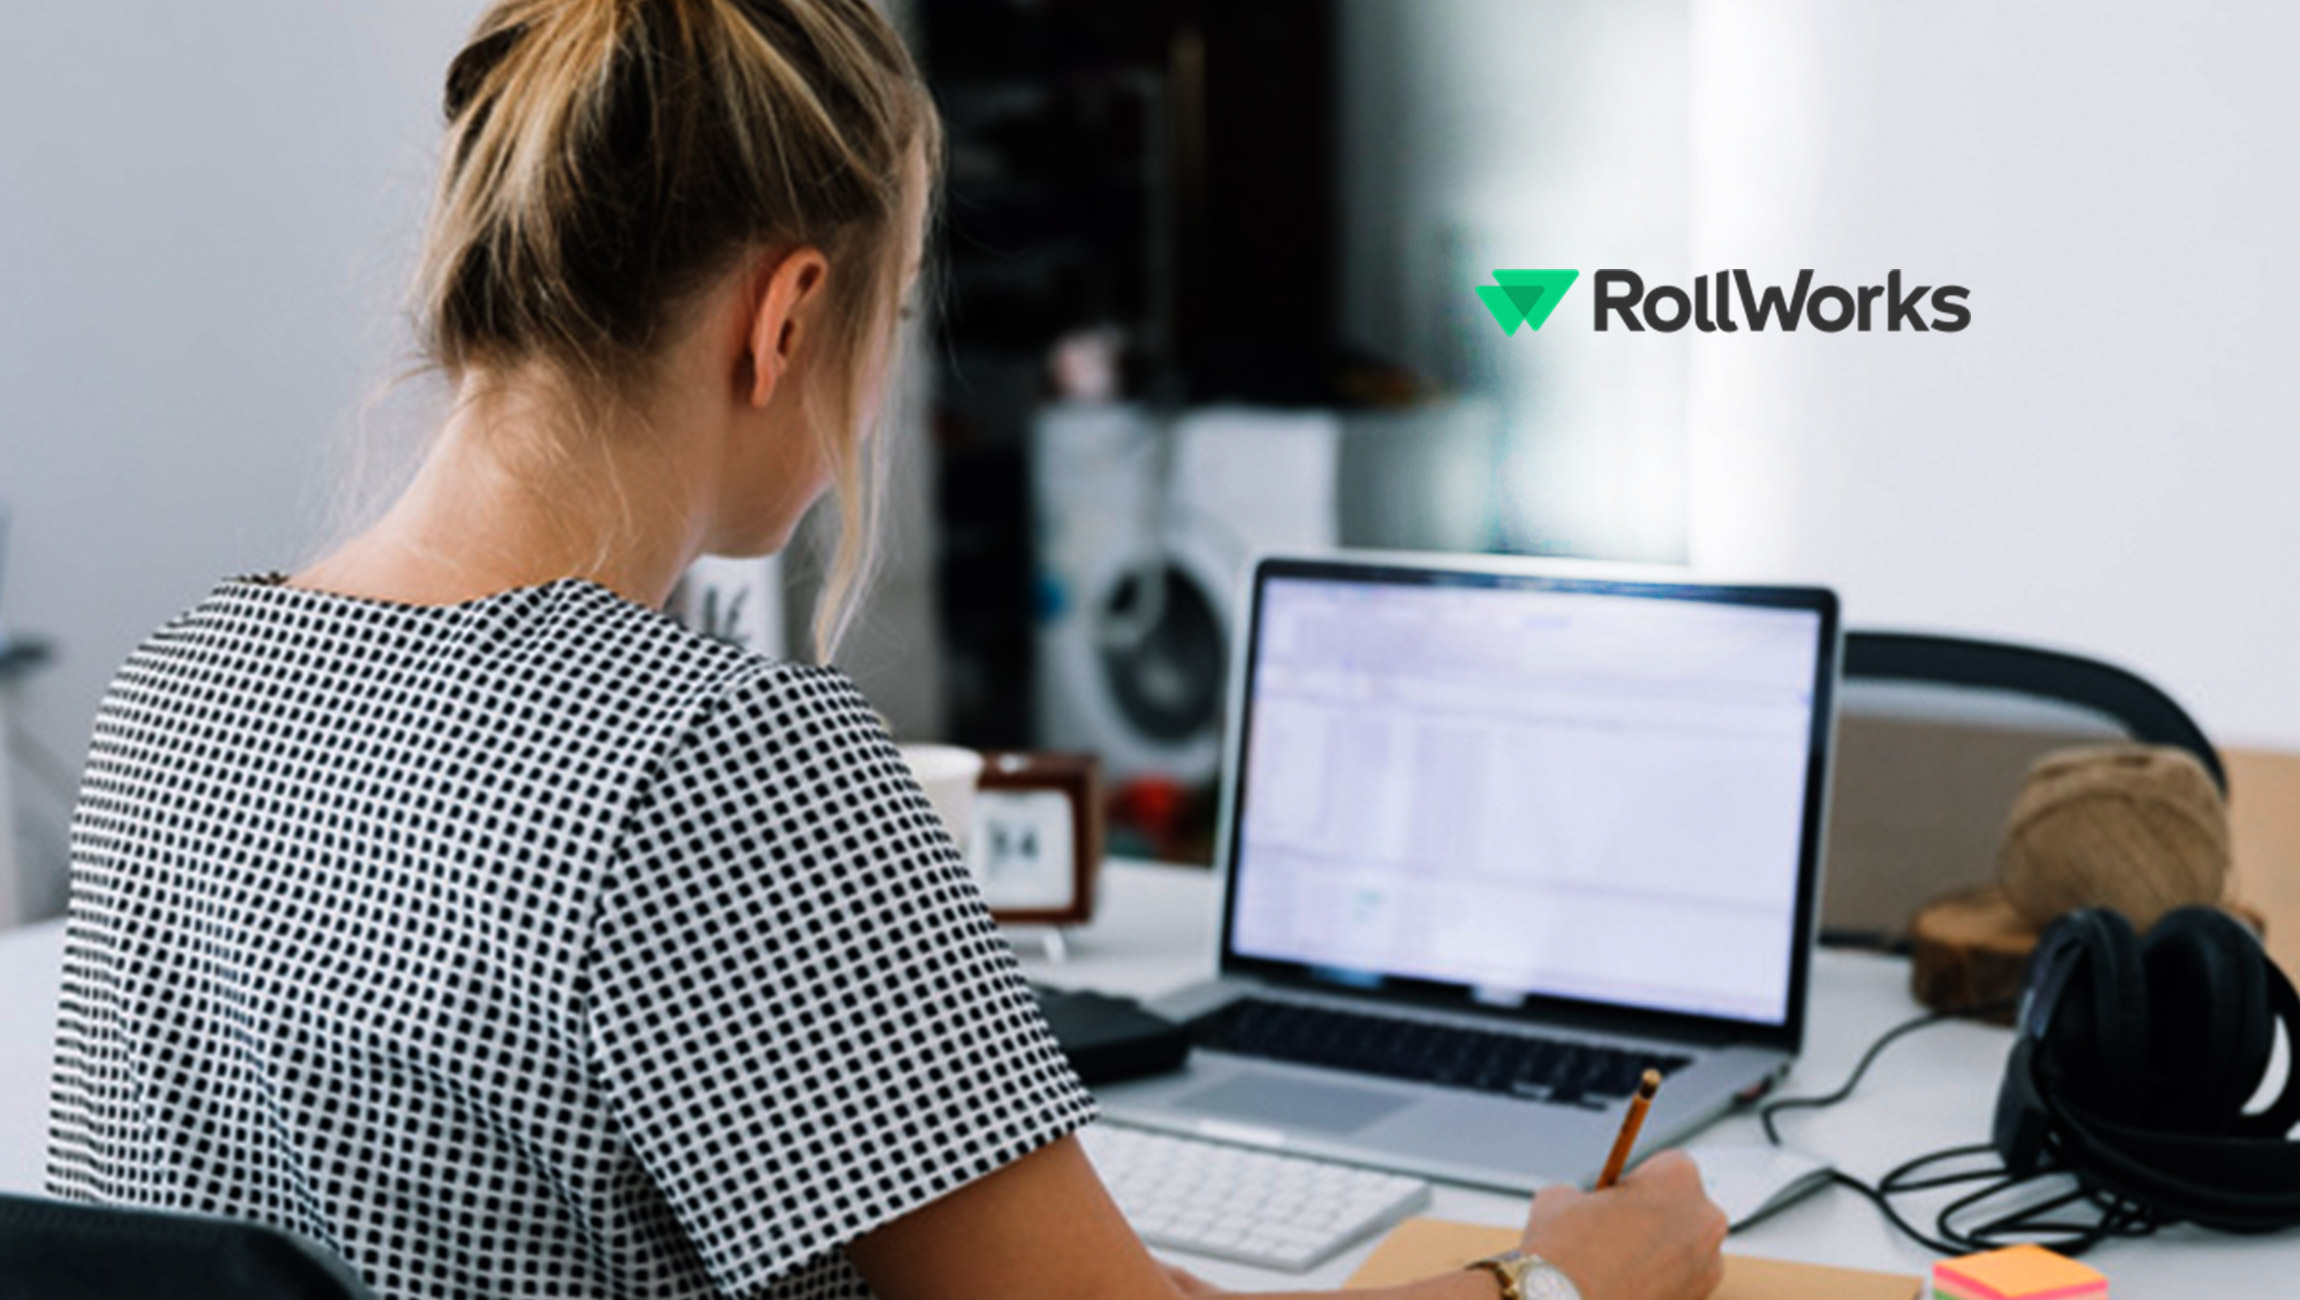 Former Marketo Executive Robin Bordoli Joins AdRoll Group as President of RollWorks